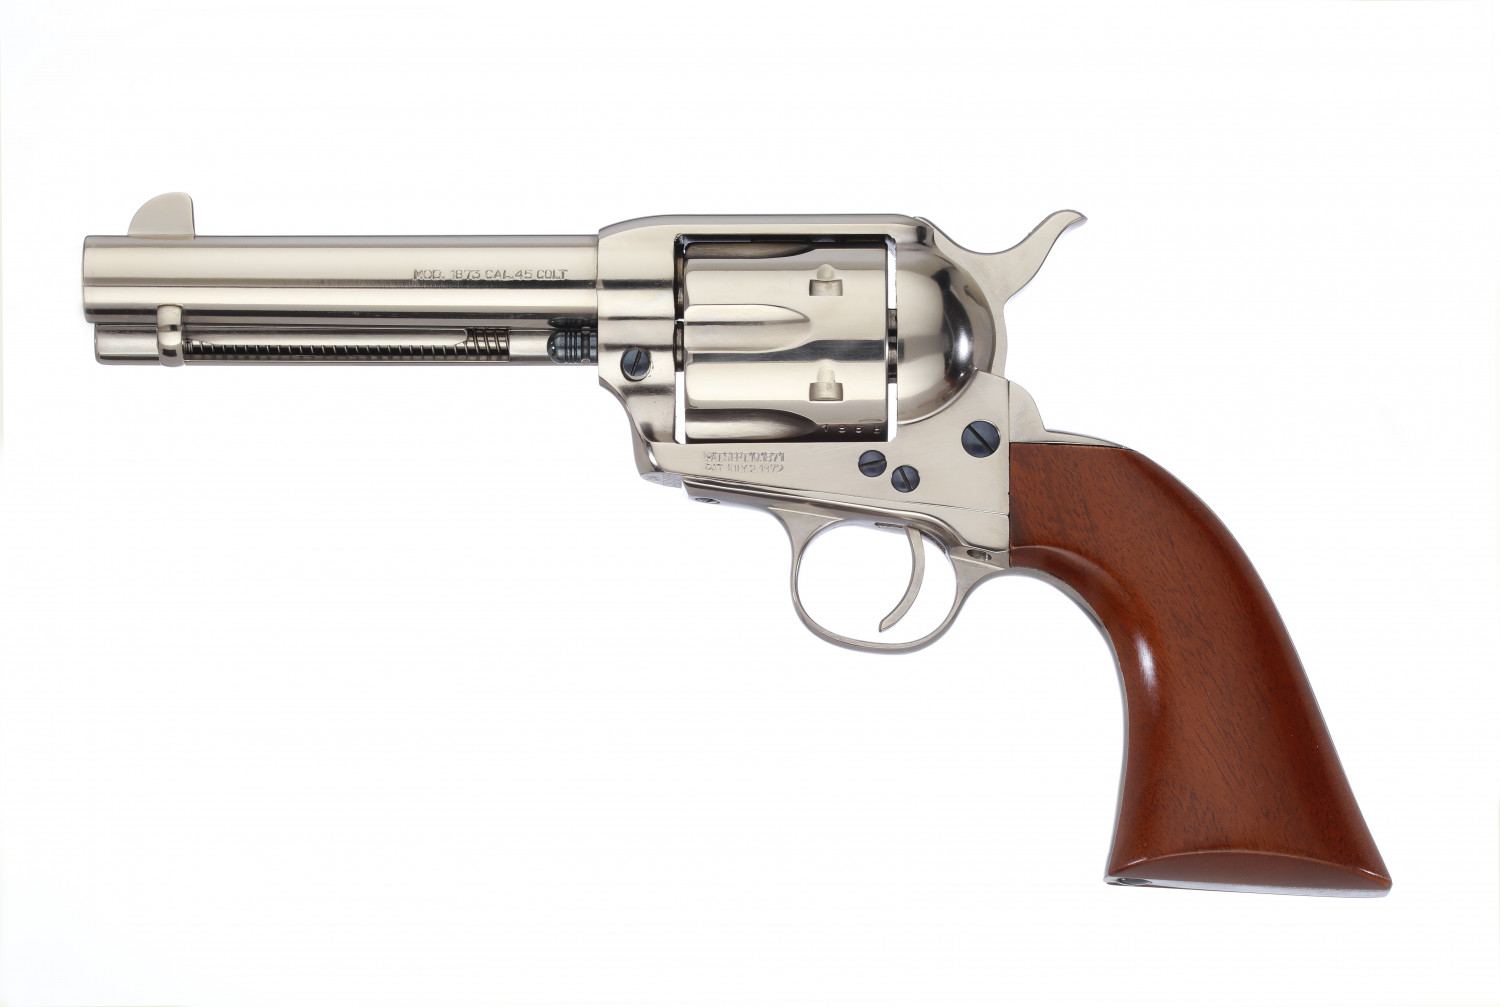 Taylor's & Company Introduces the Gunfighter Nickel Revolver